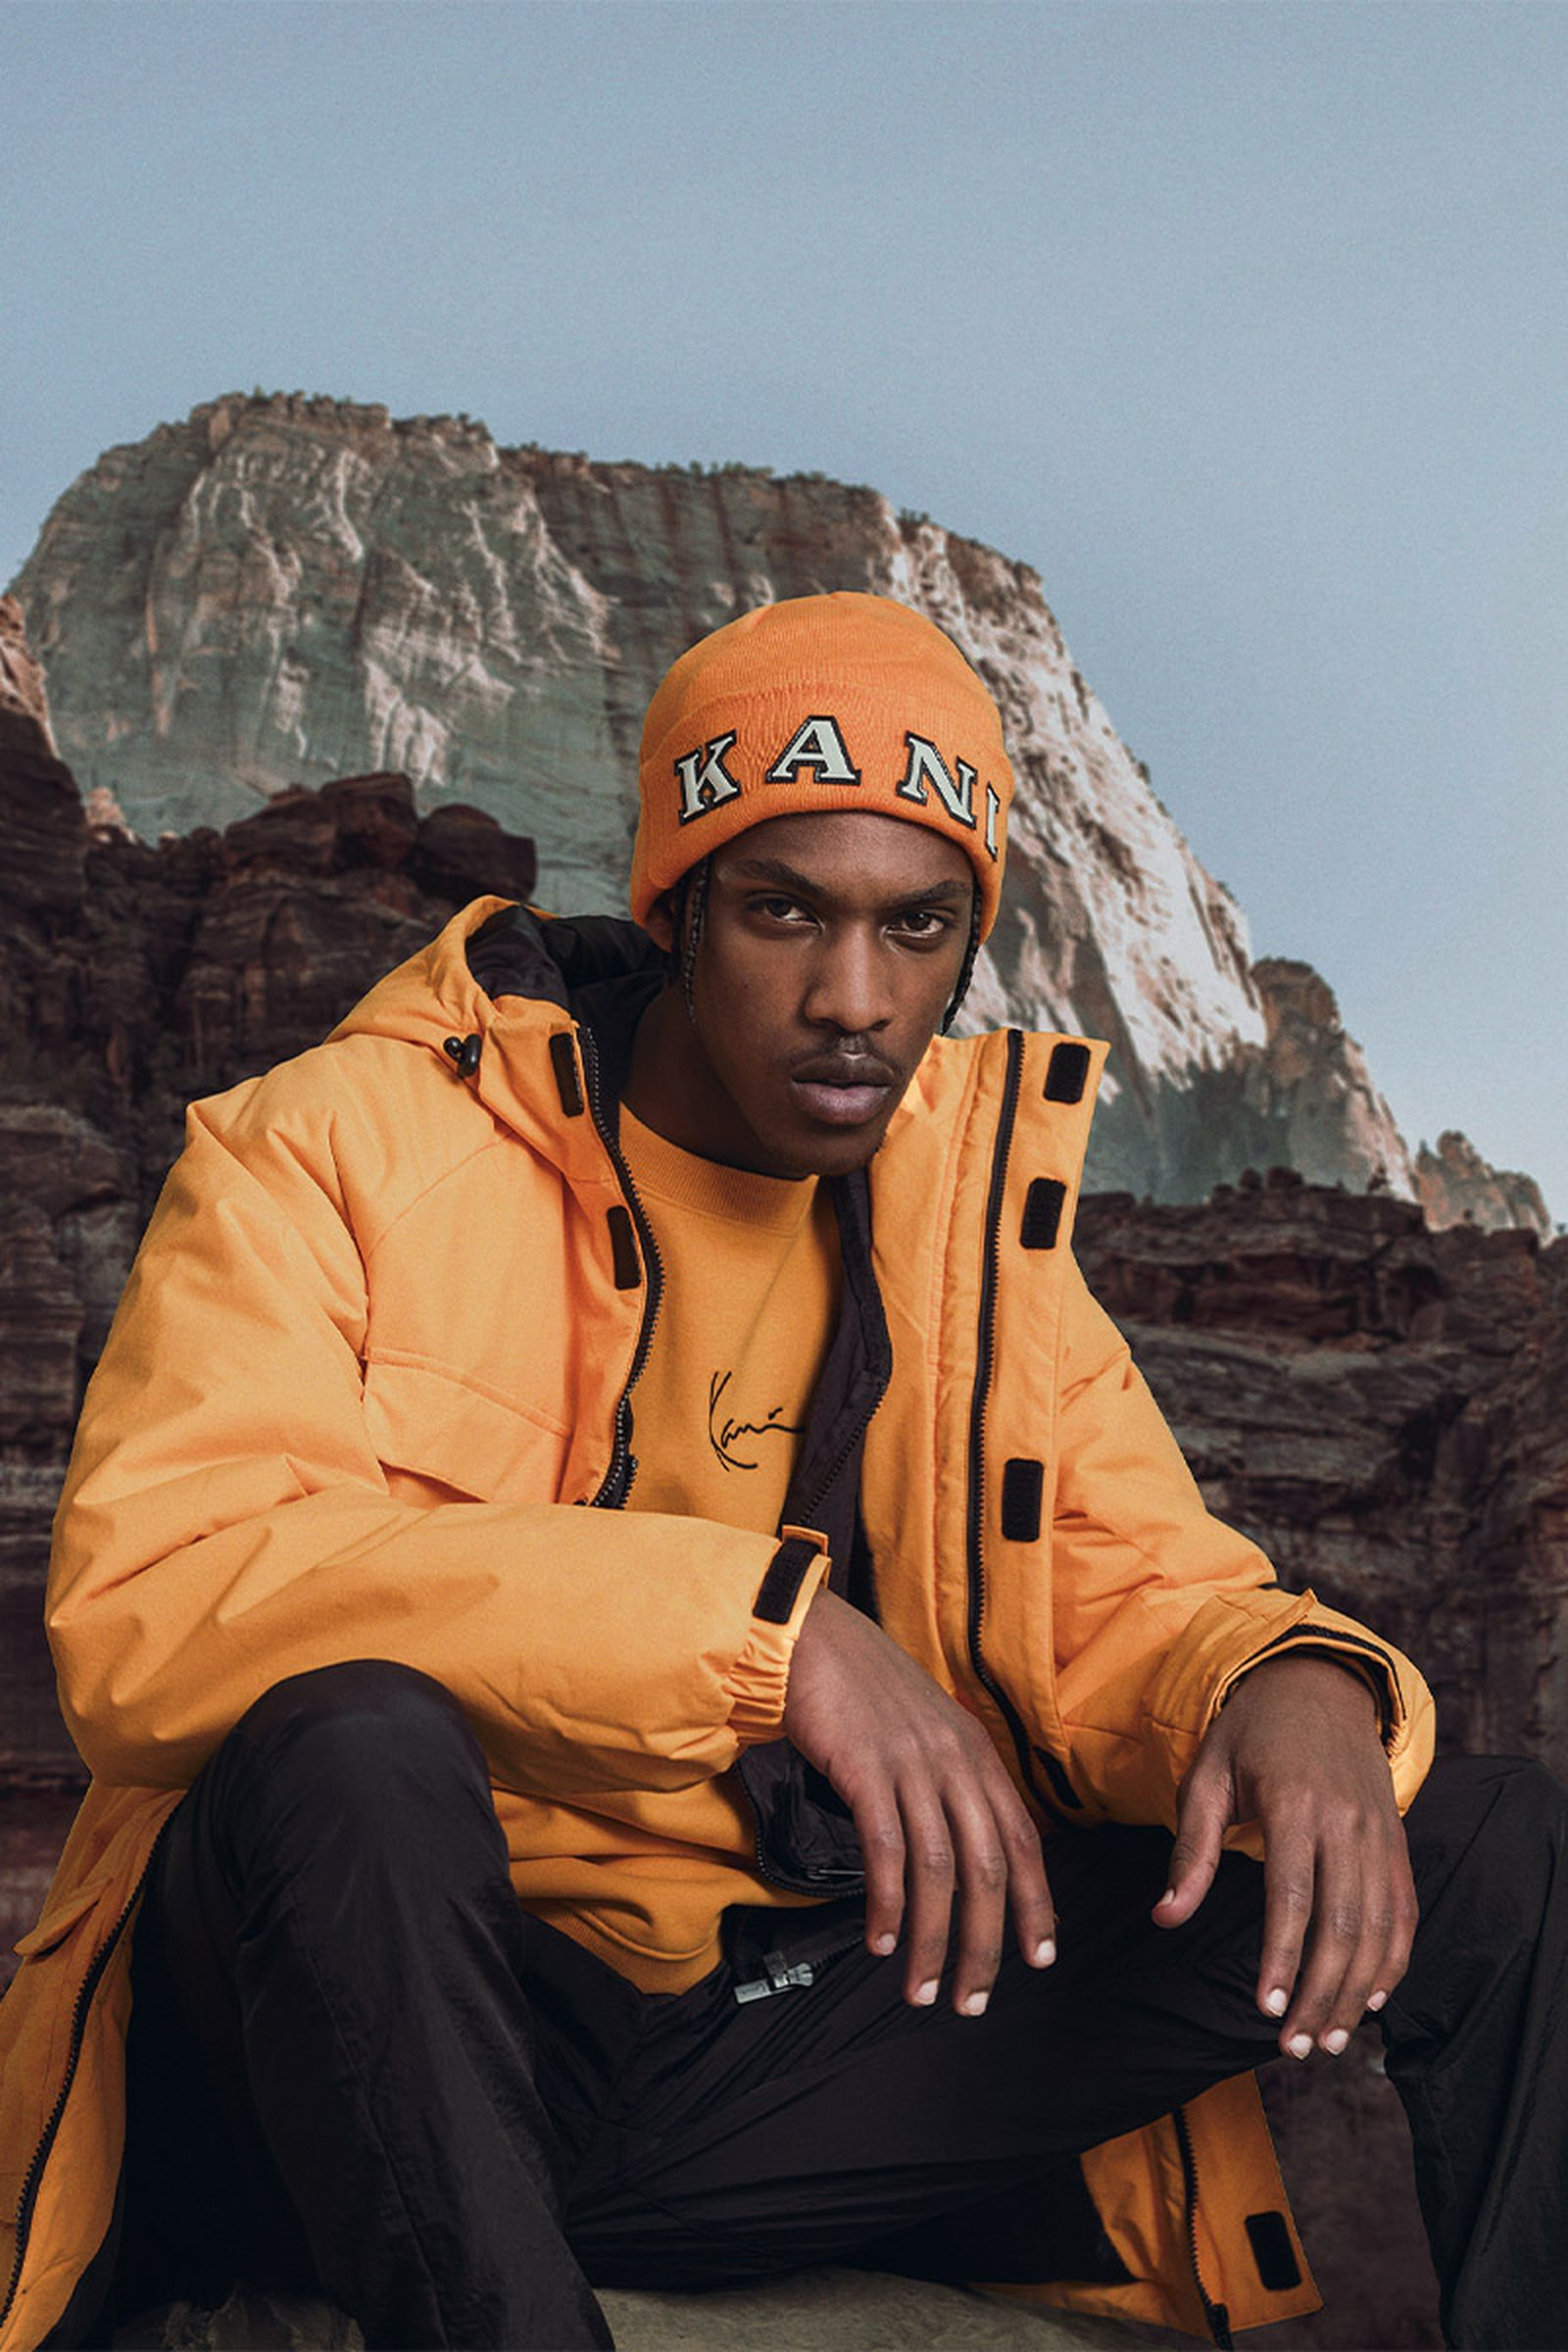 karl-kani-aw20-new-collection-release-9